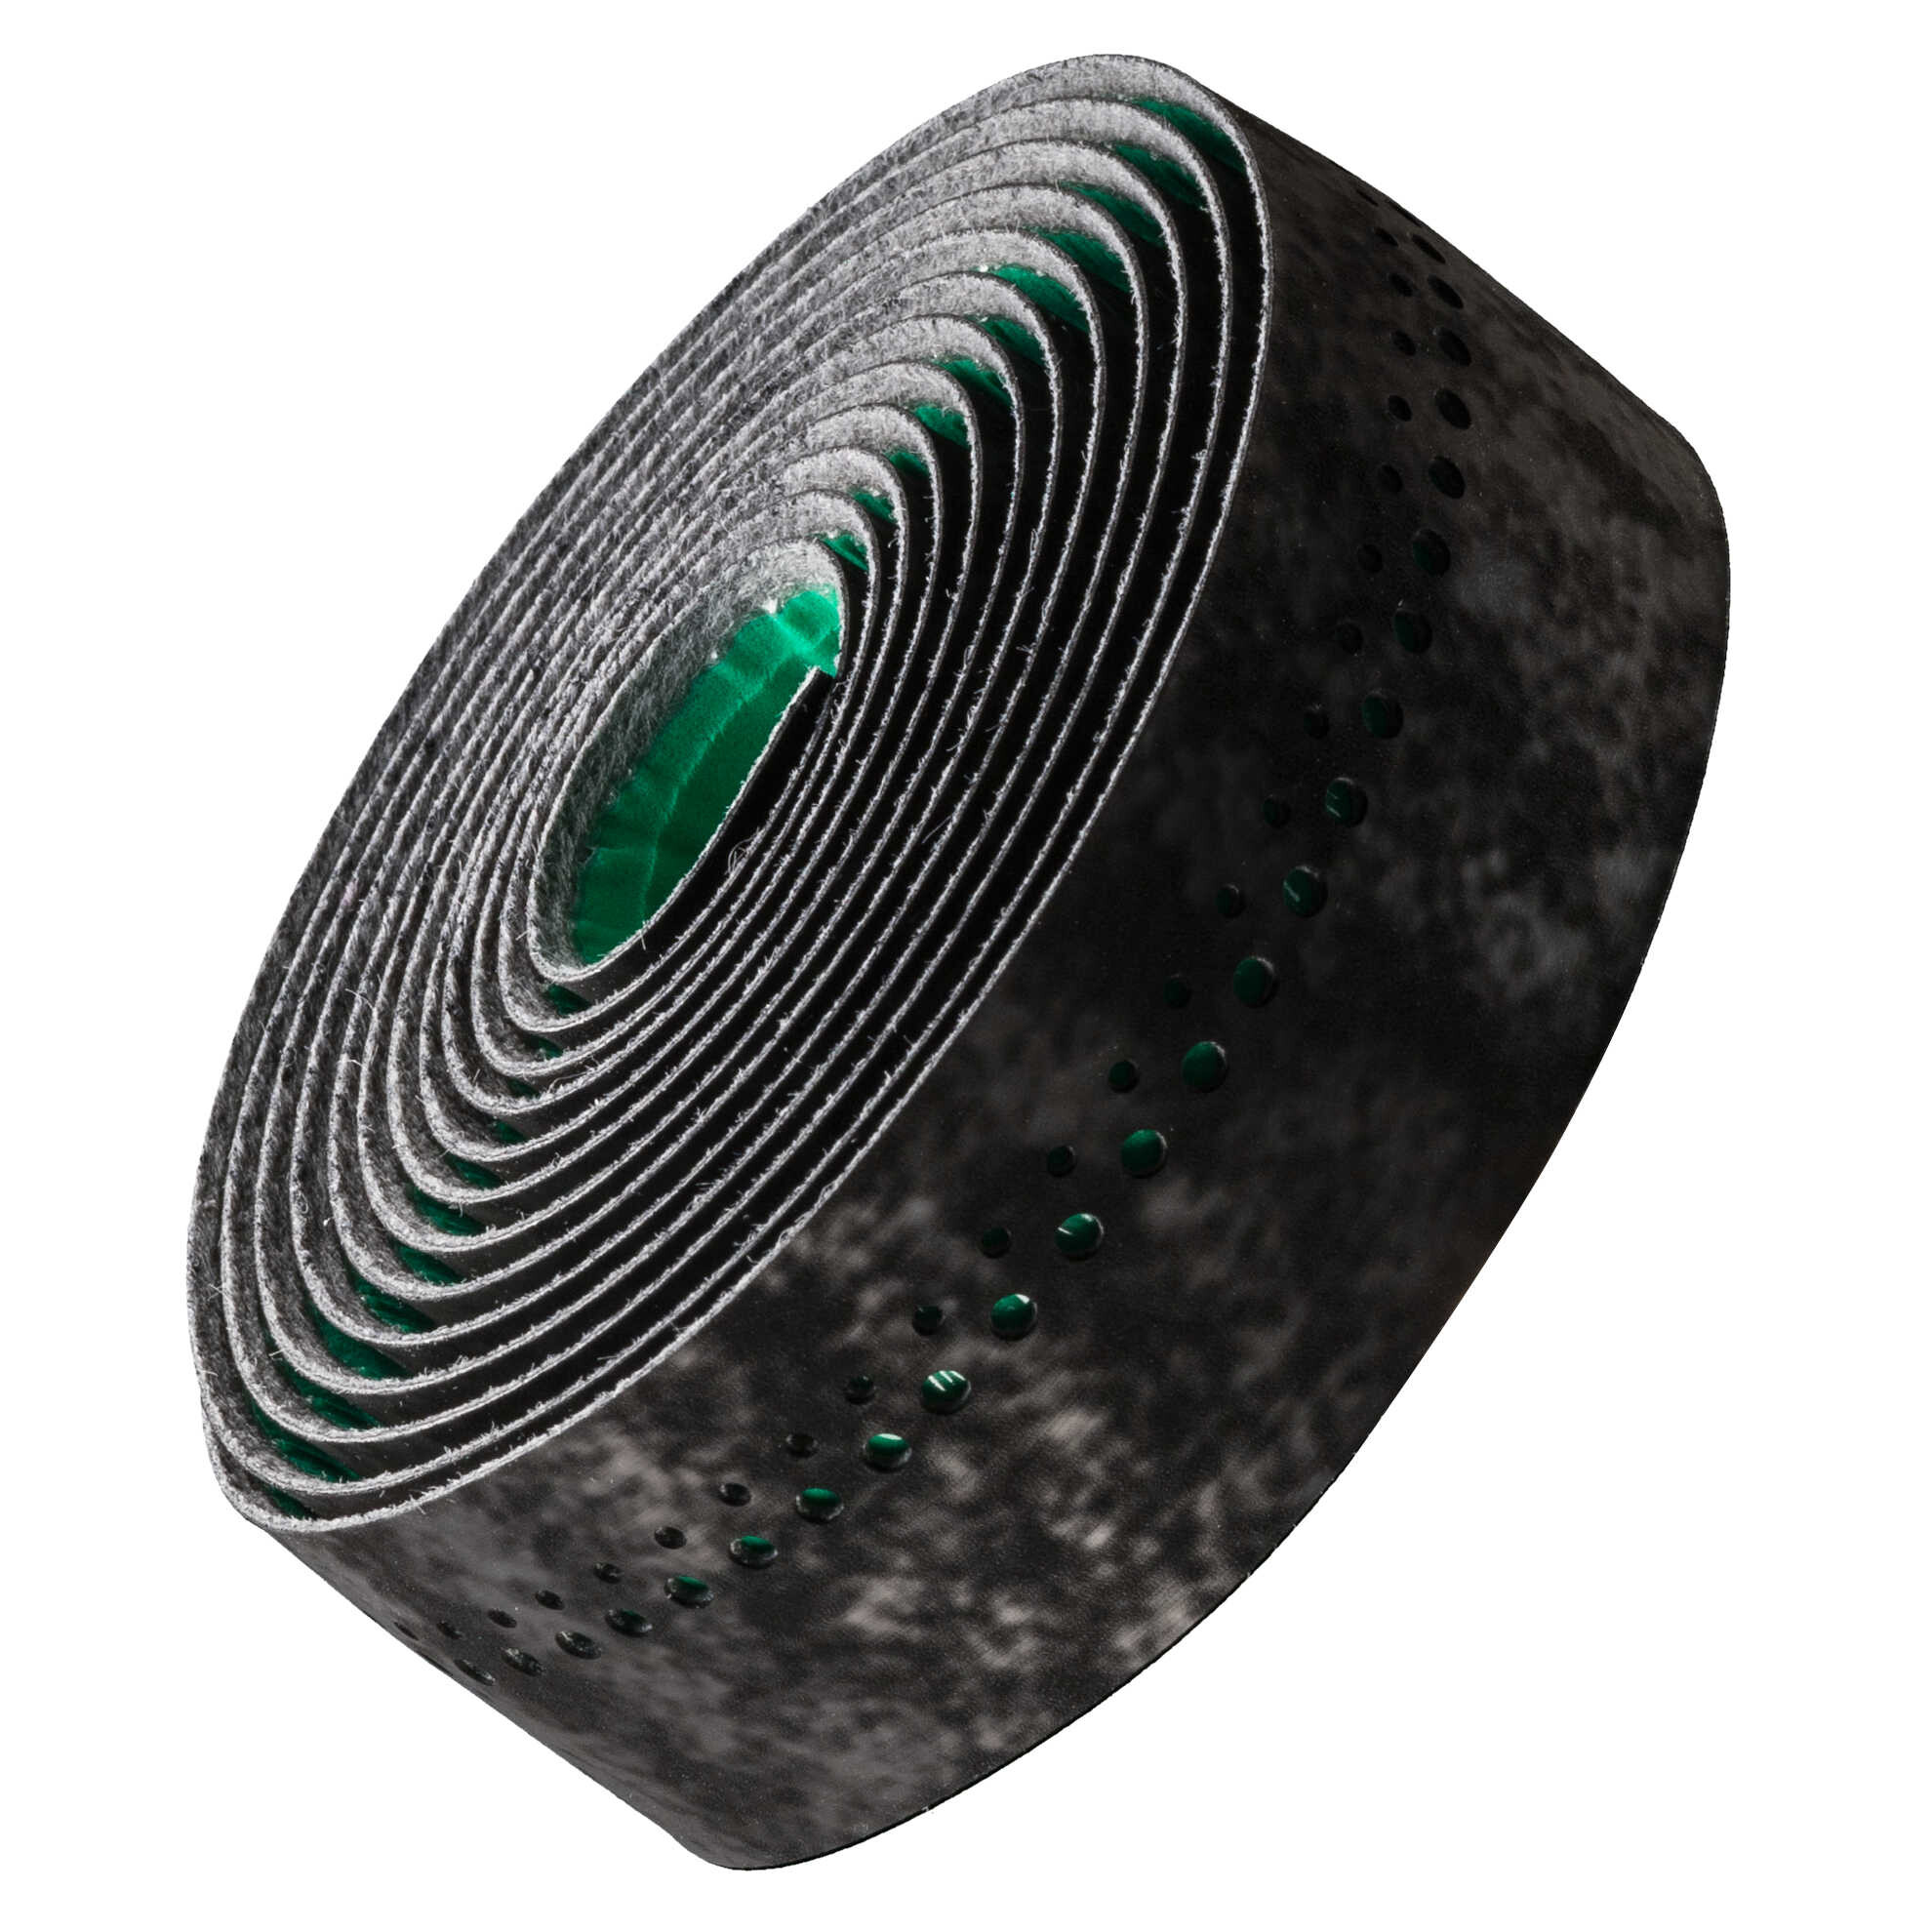 Bontrager Velvetack Styrbånd, black/green (2019) | Bar tape